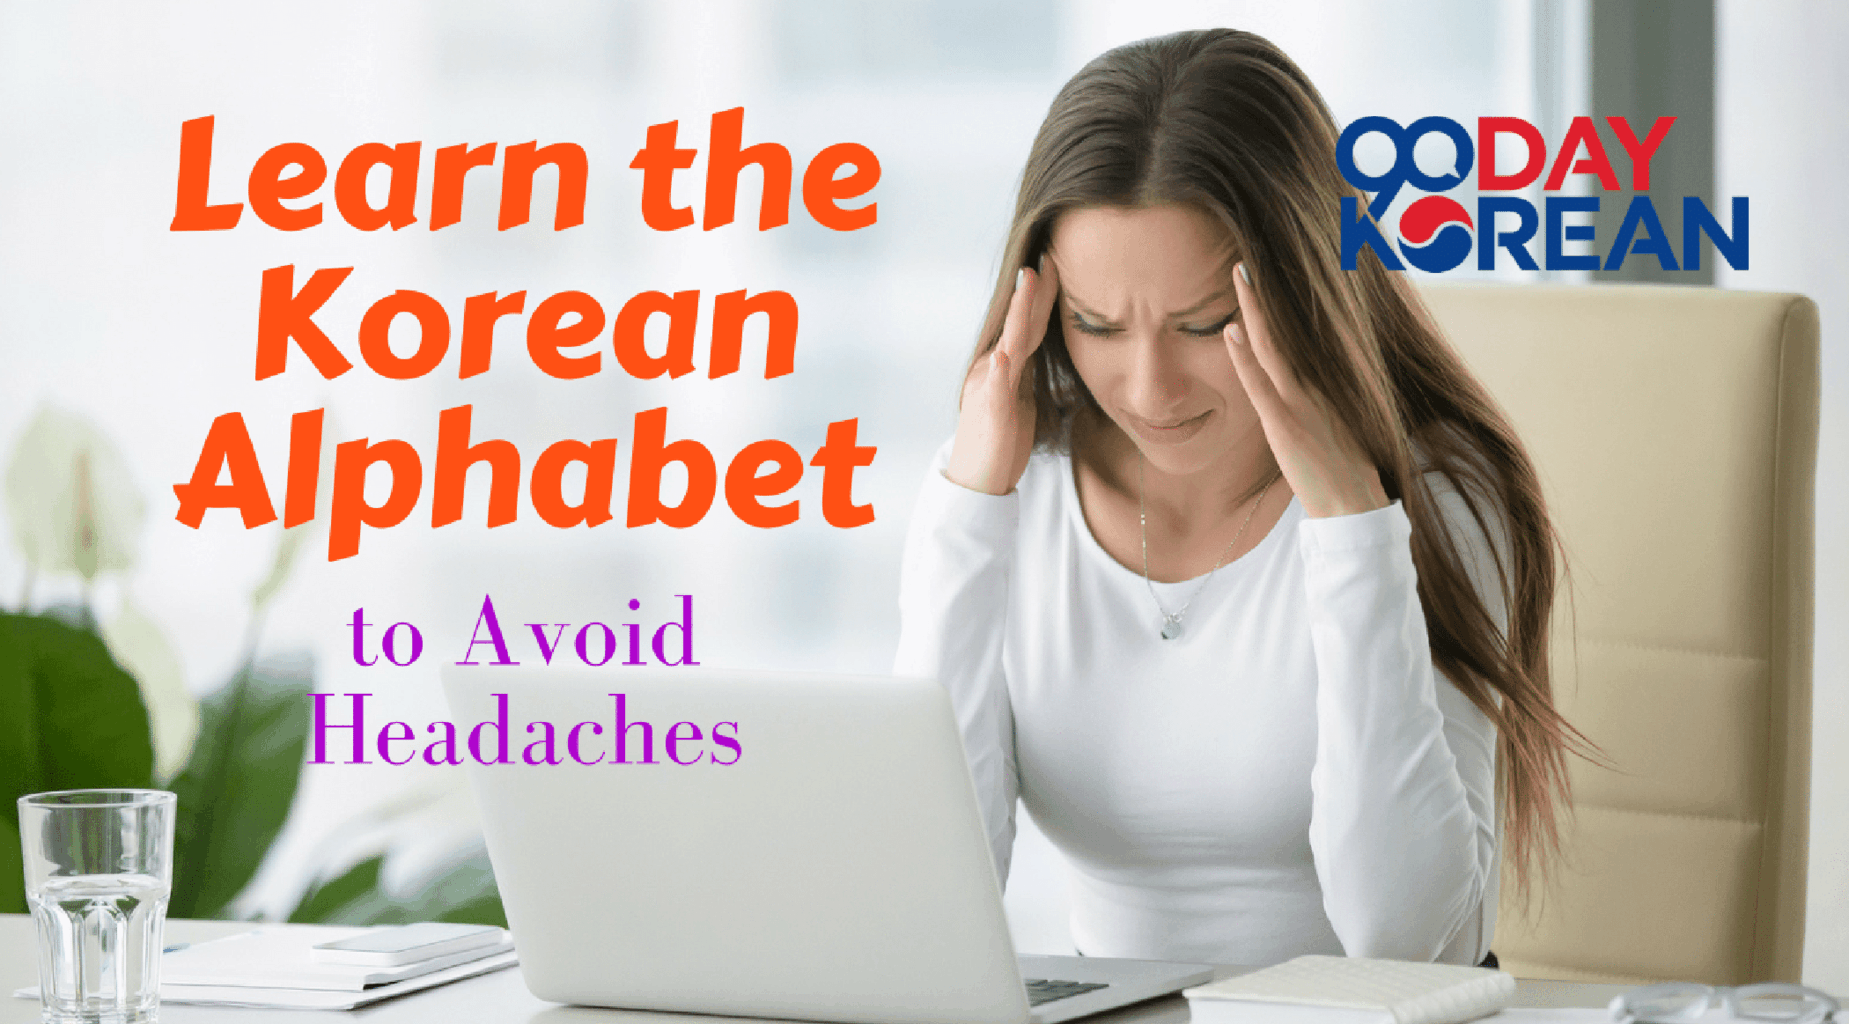 How To Learn The Korean Alphabet In 1 Hour